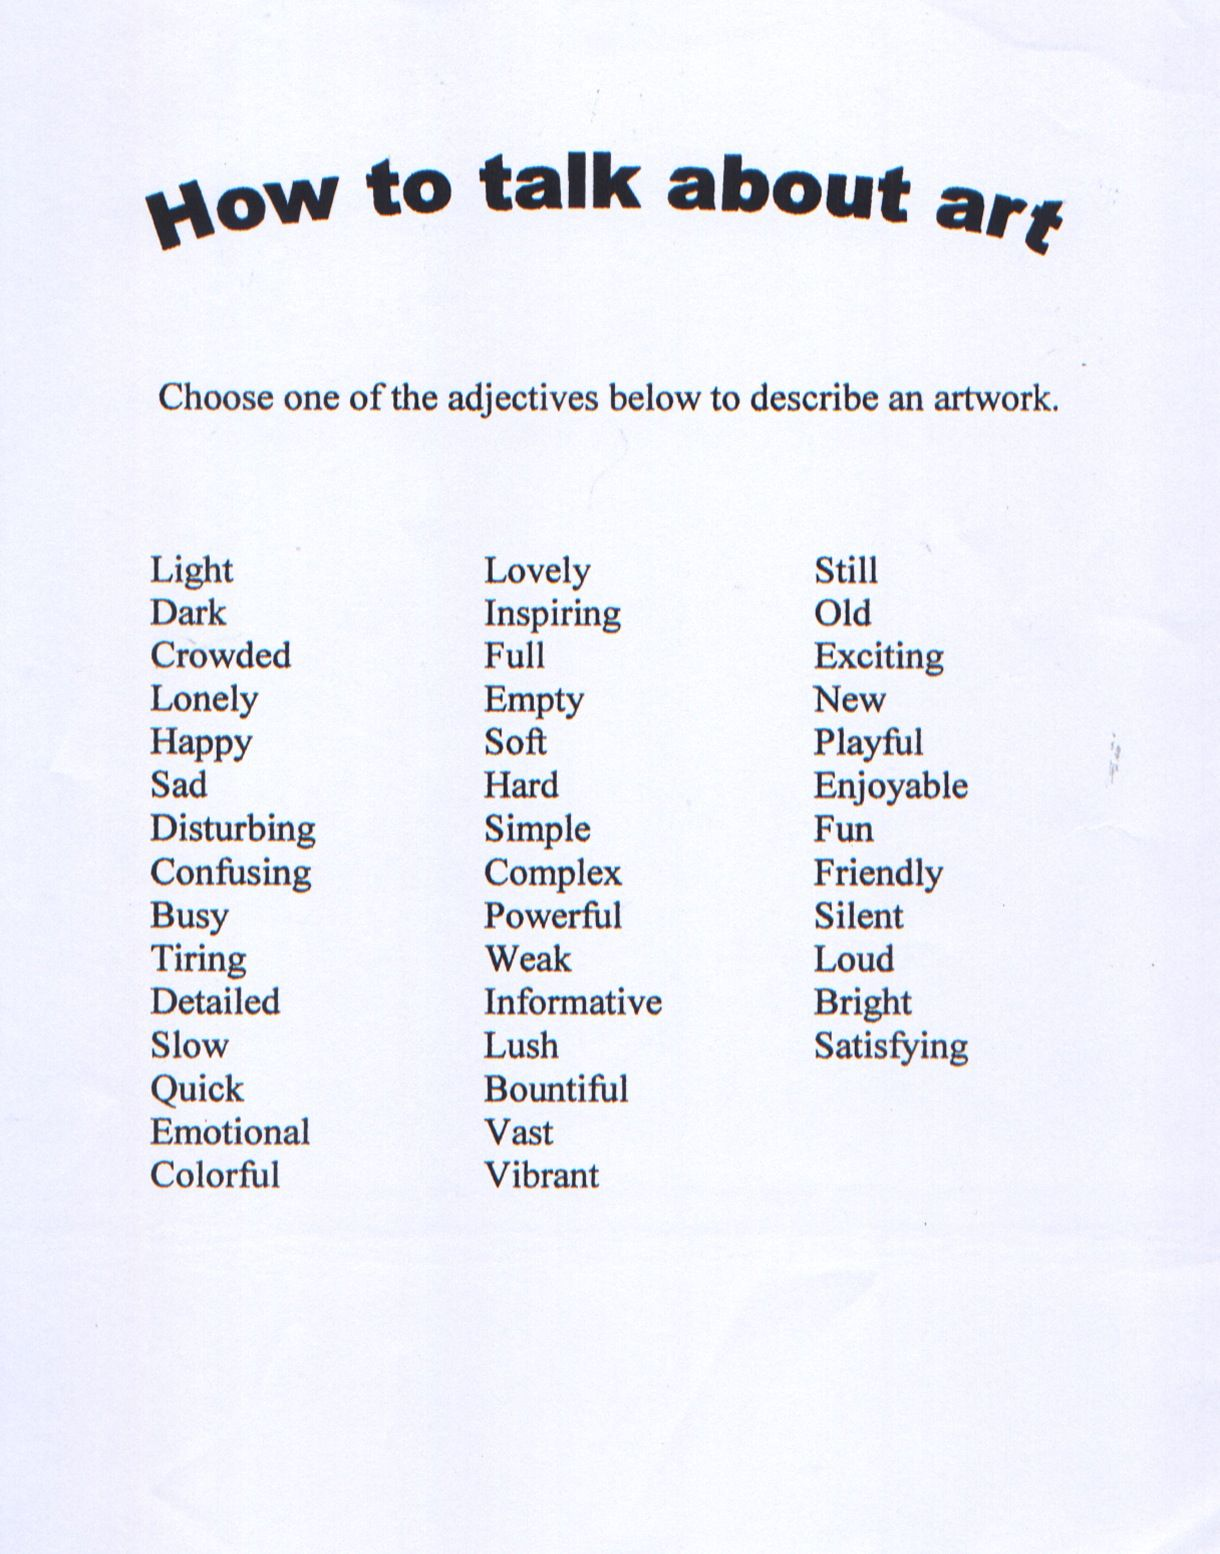 Pin By Courtney H On Art Ideas Art Rubric Art Criticism